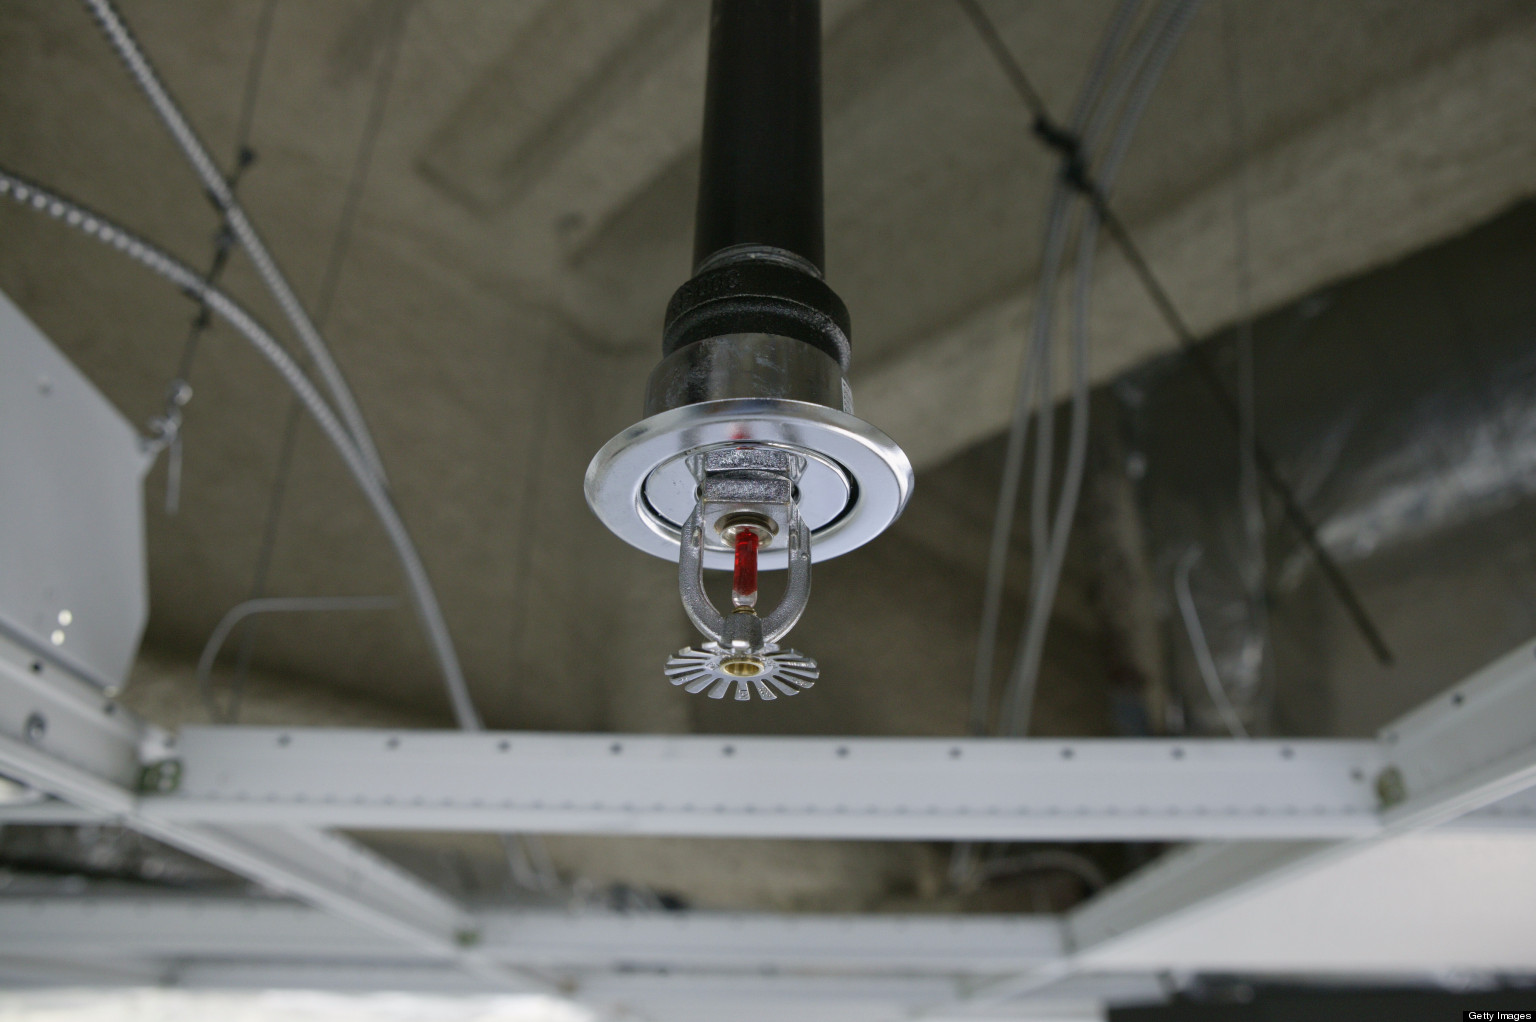 Illinois Fire Sprinkler Law State Could Require Sprinkler System Be Installed In New Homes